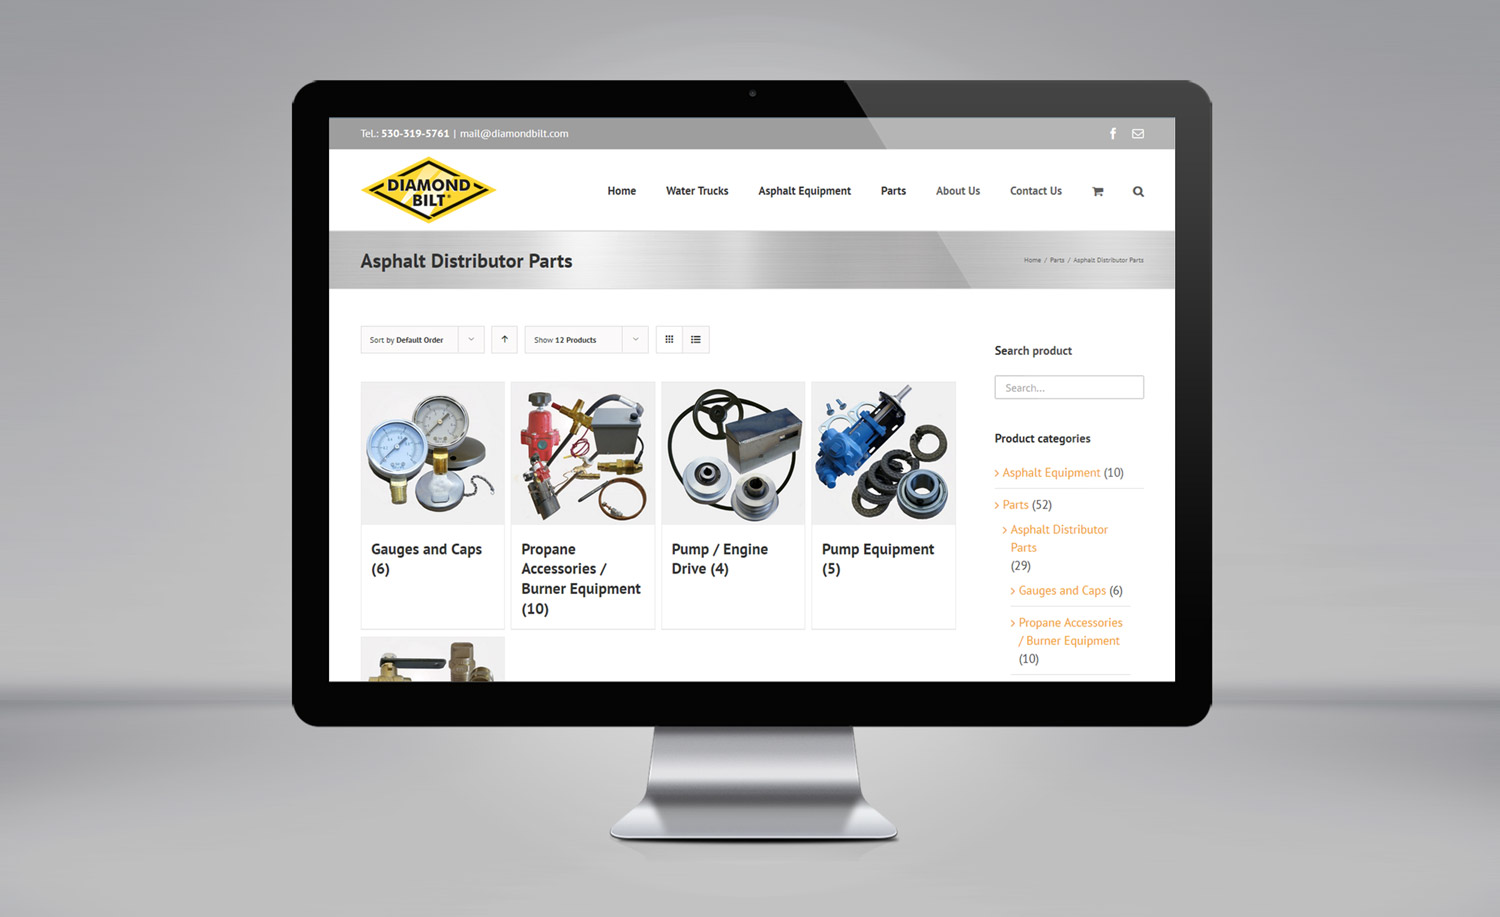 Diamond Bilt website